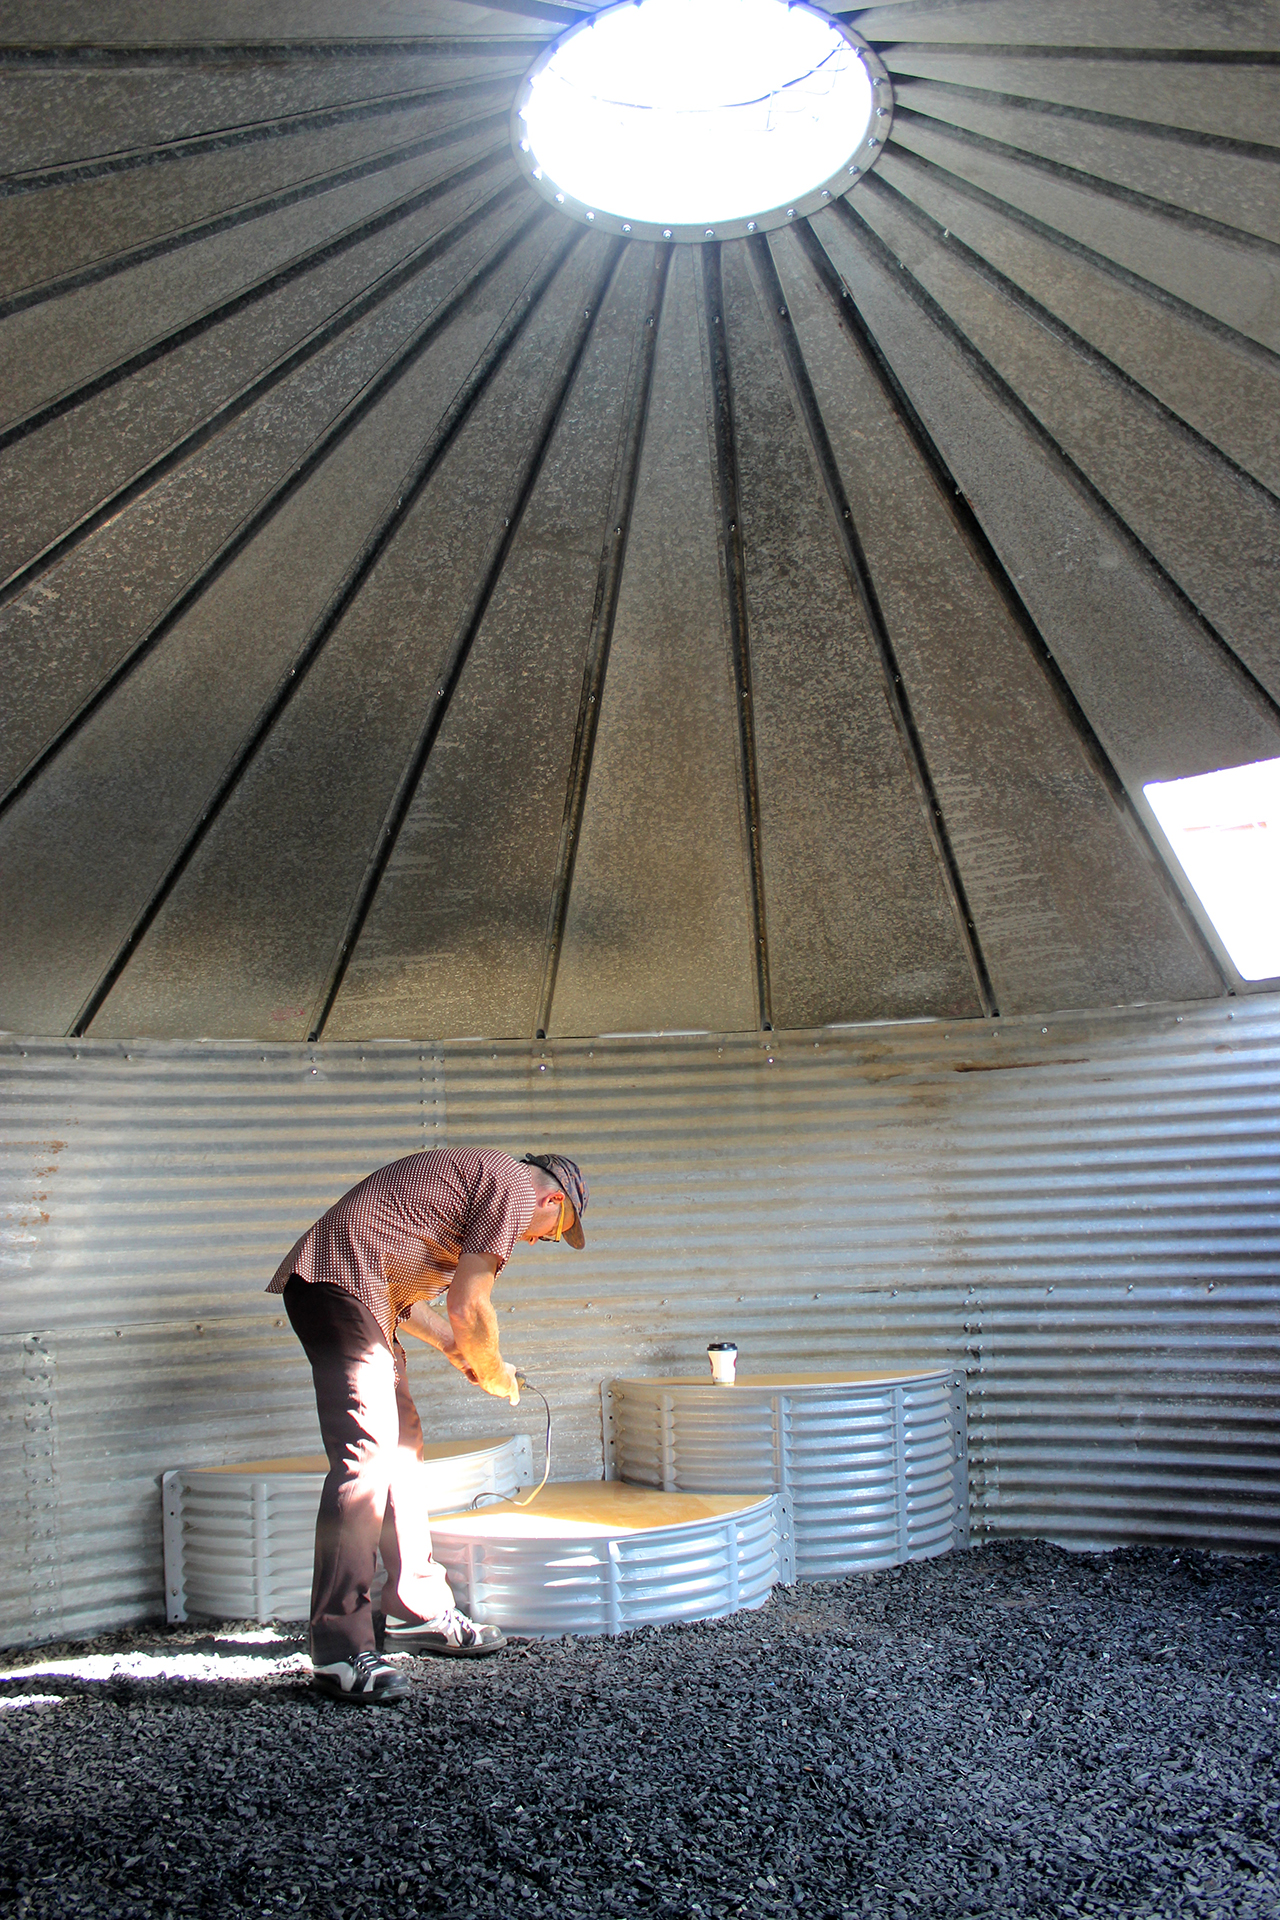 Jon Brumit plugs his phone in to activate the sound silo. Visitors can sub their own music players and experience them through the filter of the house. (click to enlarge)